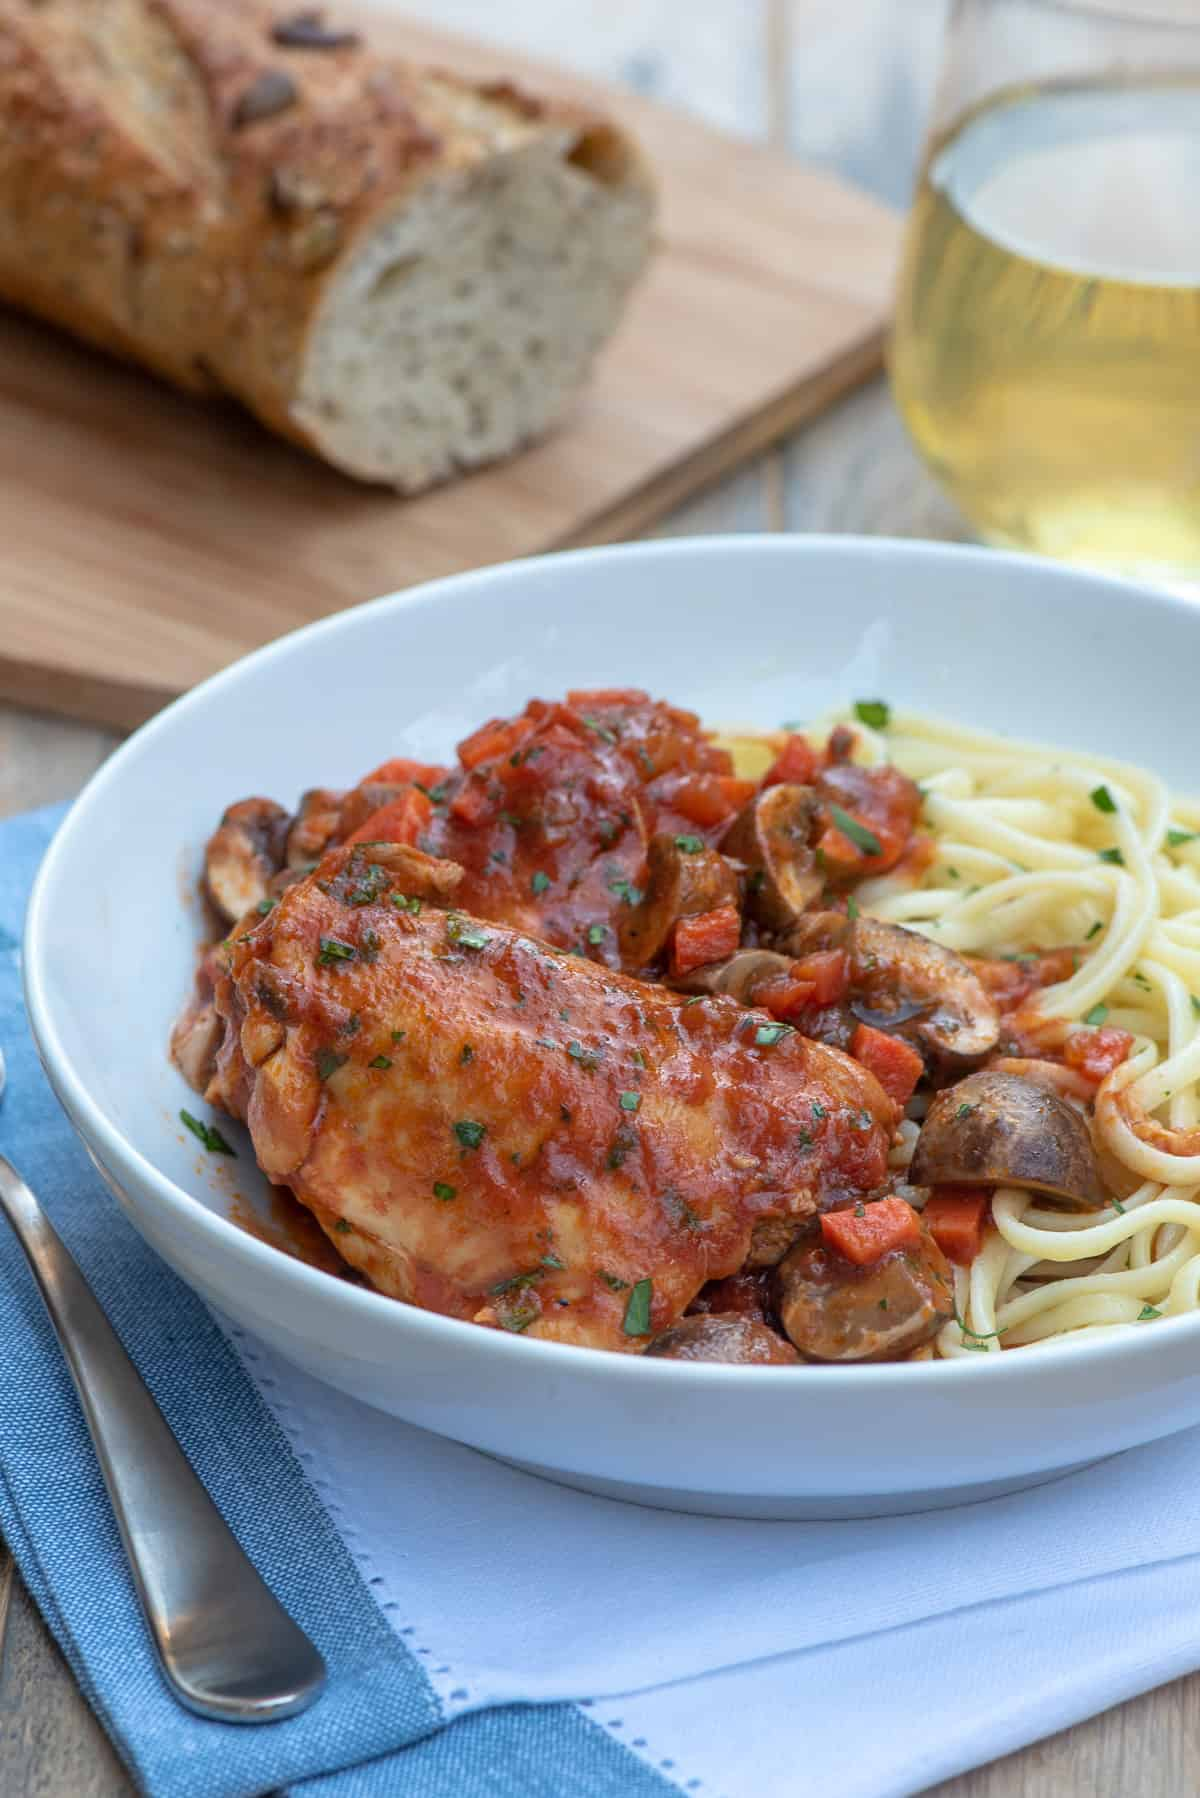 A serving of Slow Cooker Chicken Cacciatore in a white serving dish with pasta.